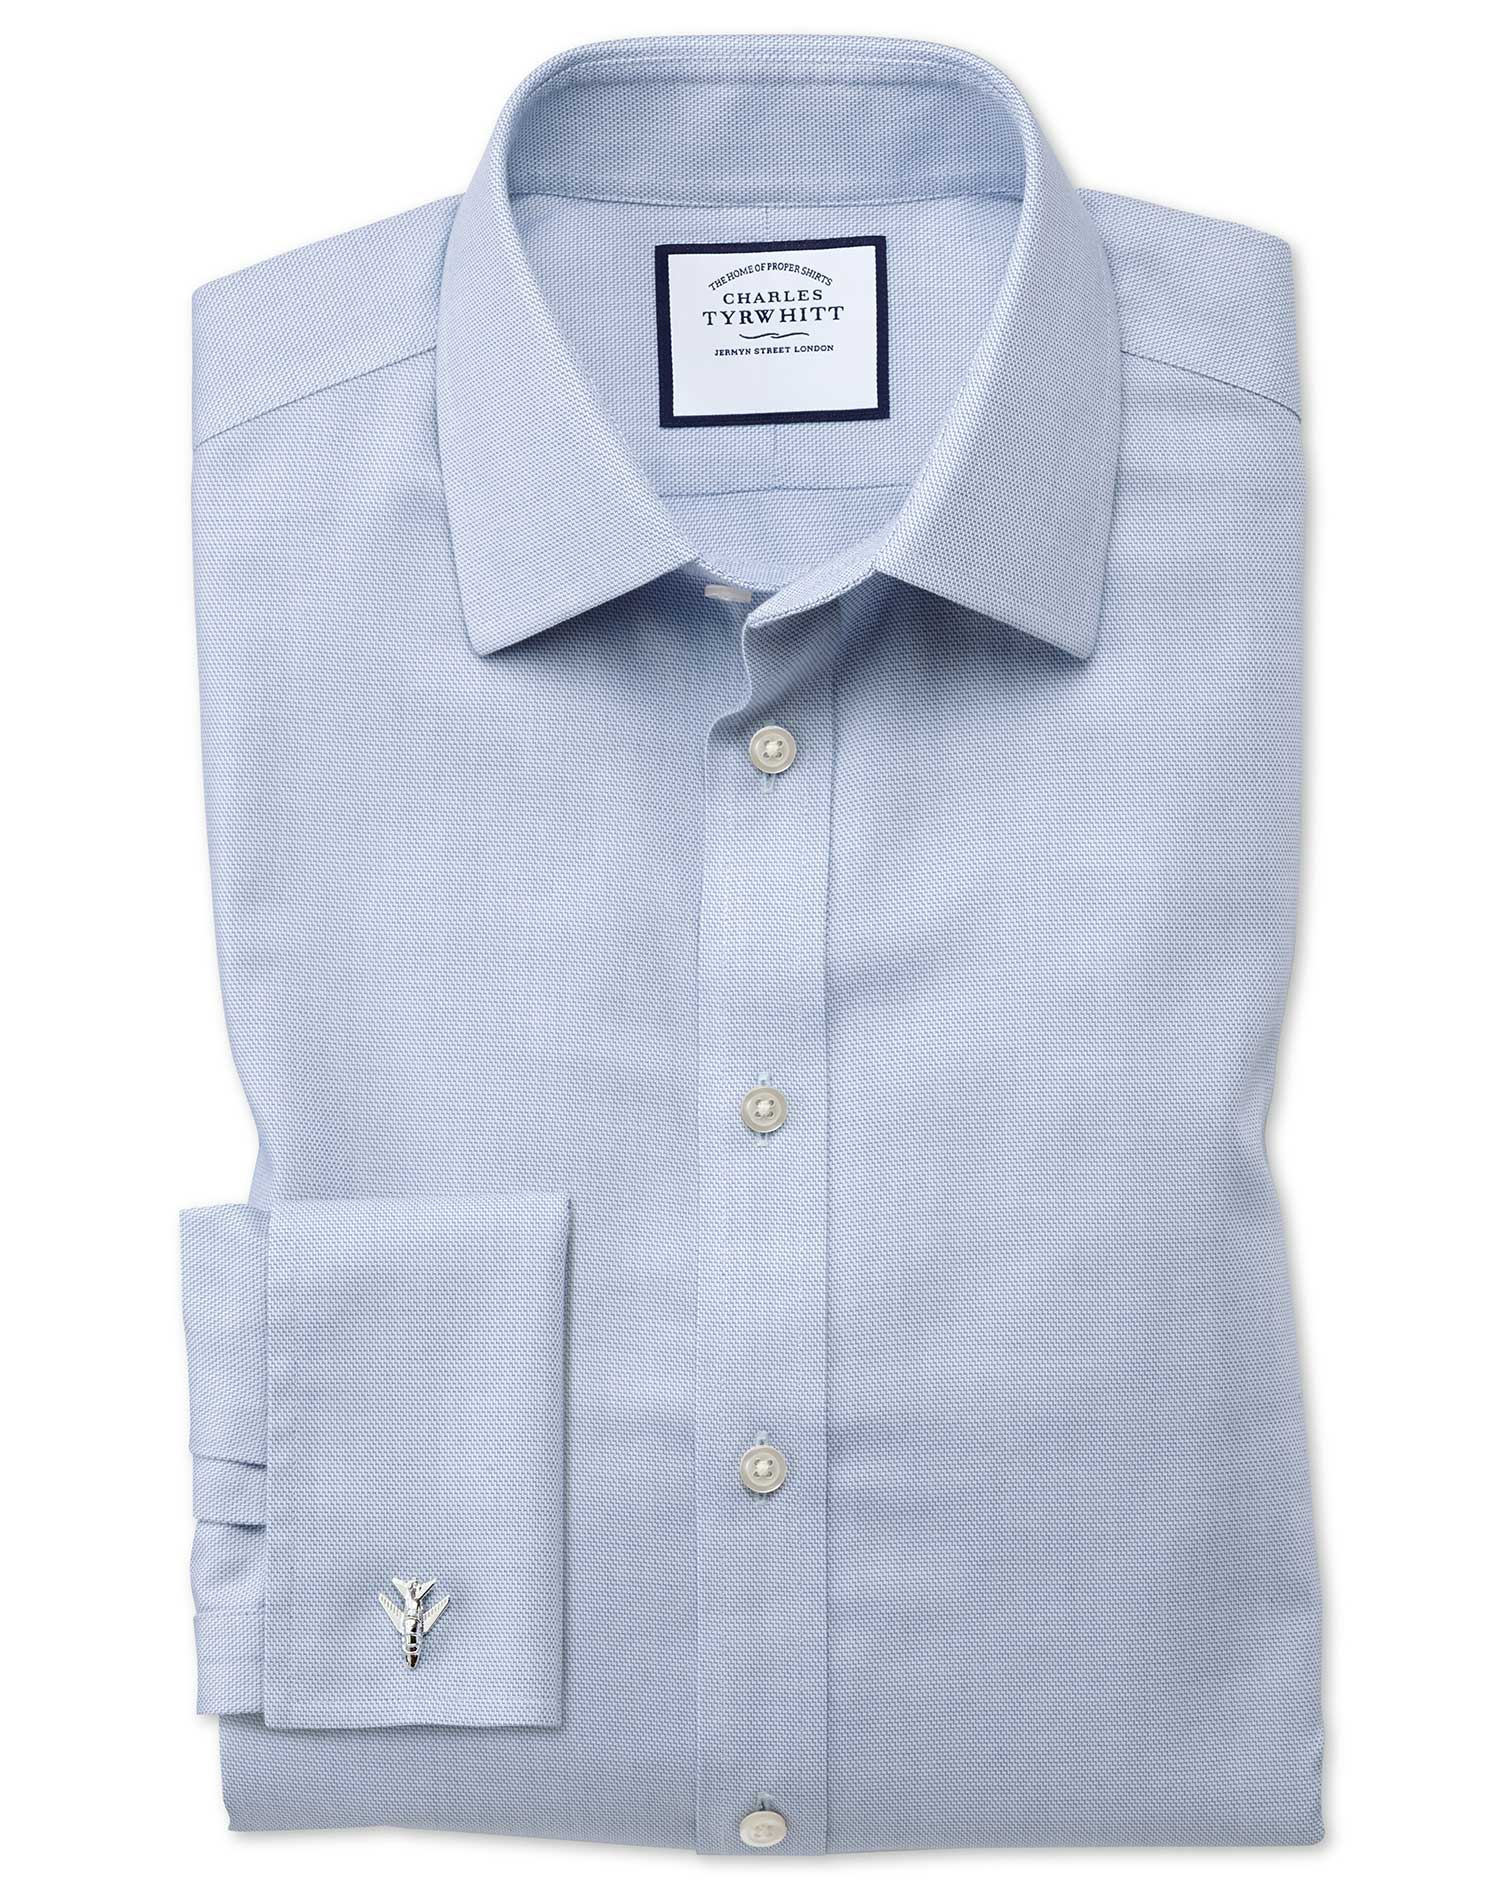 Slim Fit Non-Iron Step Weave Mid Blue Cotton Formal Shirt Single Cuff Size 16/35 by Charles Tyrwhitt